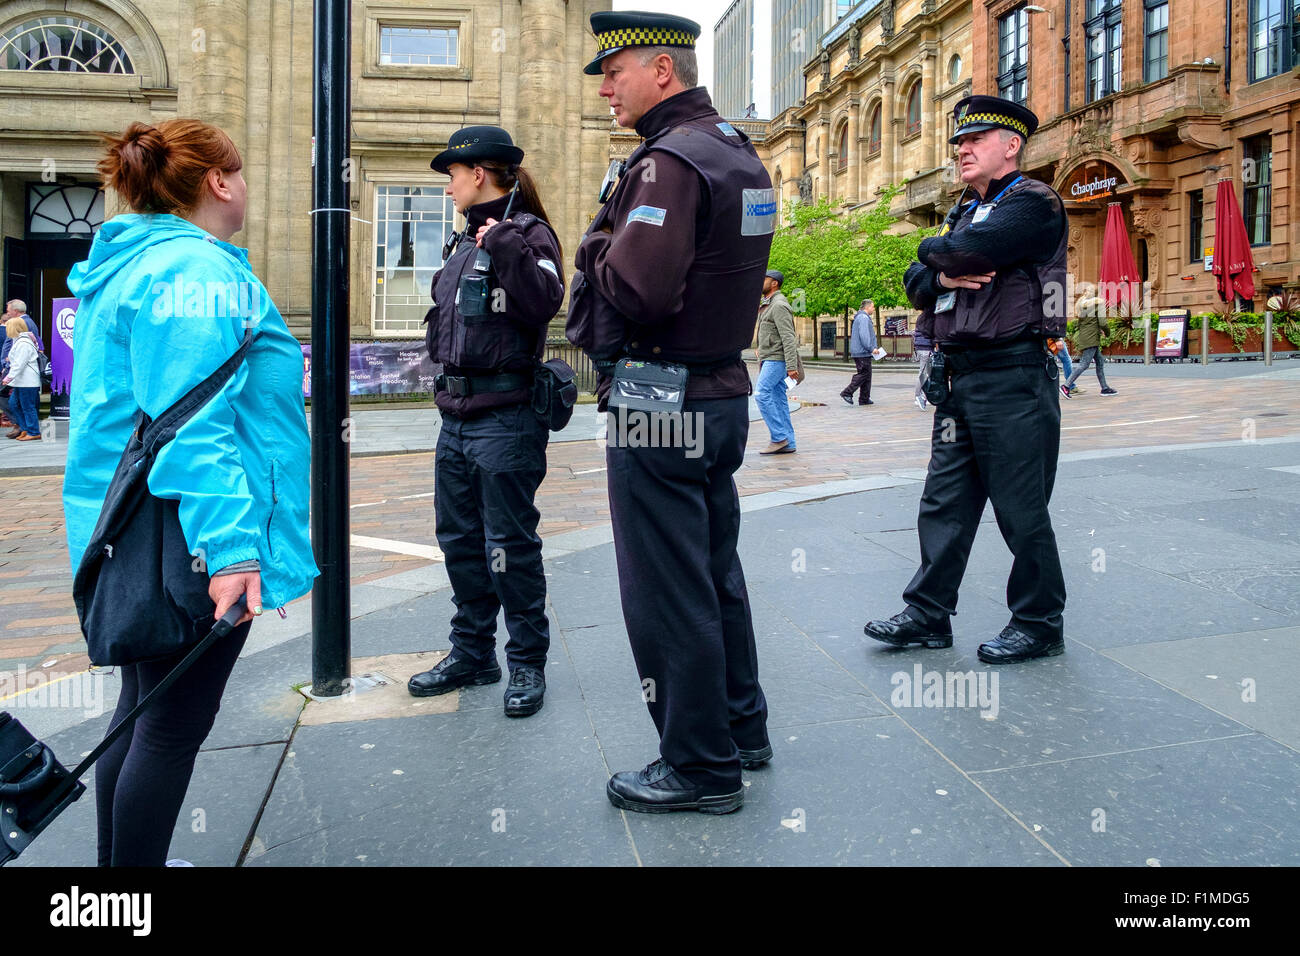 uk police officers patrolling street member public - Stock Image